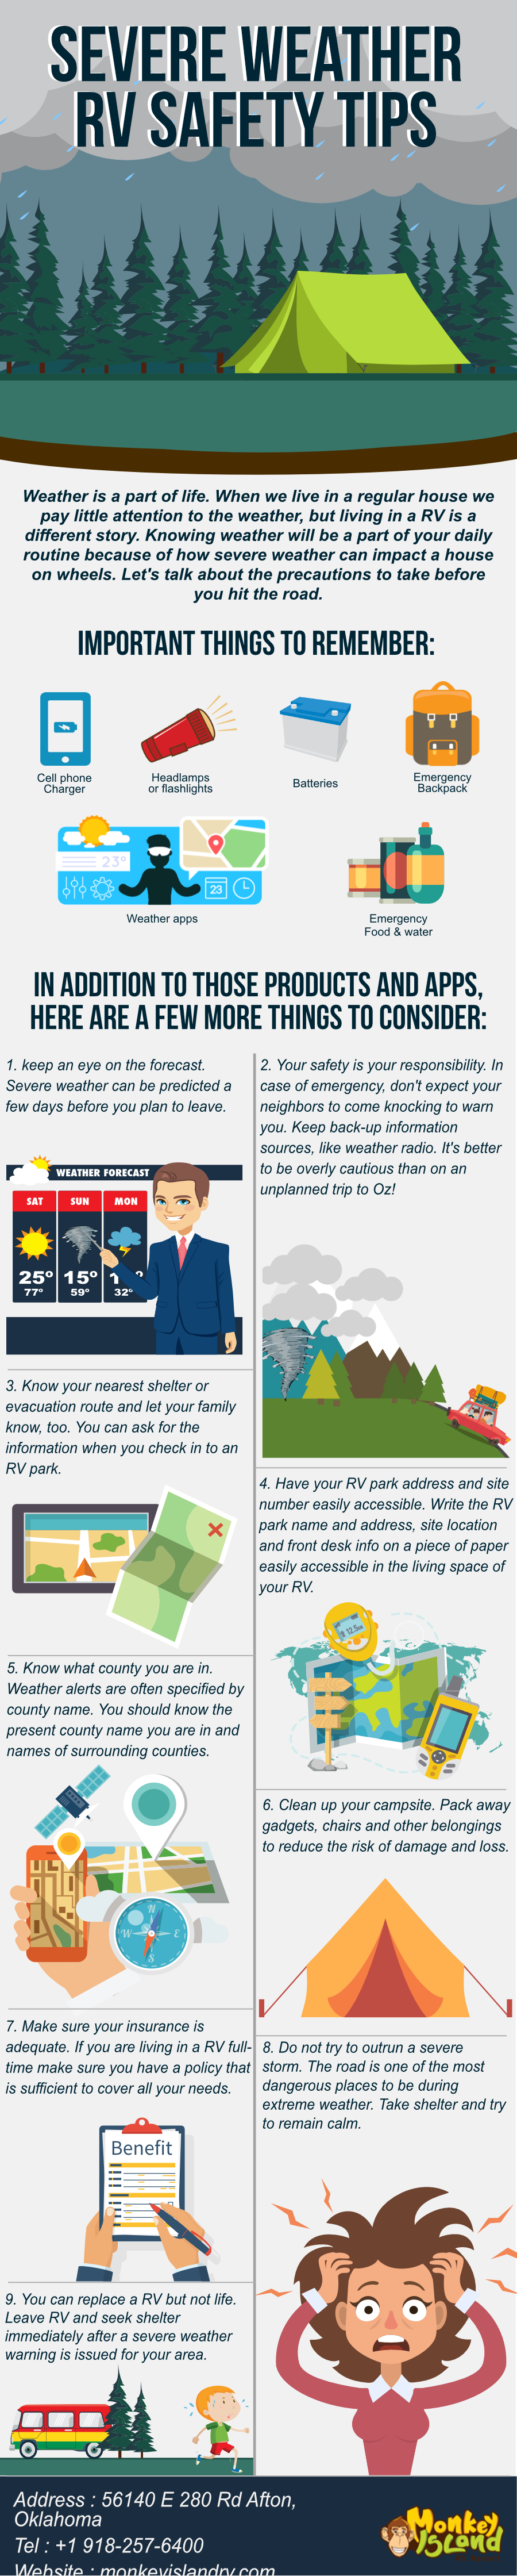 Severe Weather RV Safety Tips.png